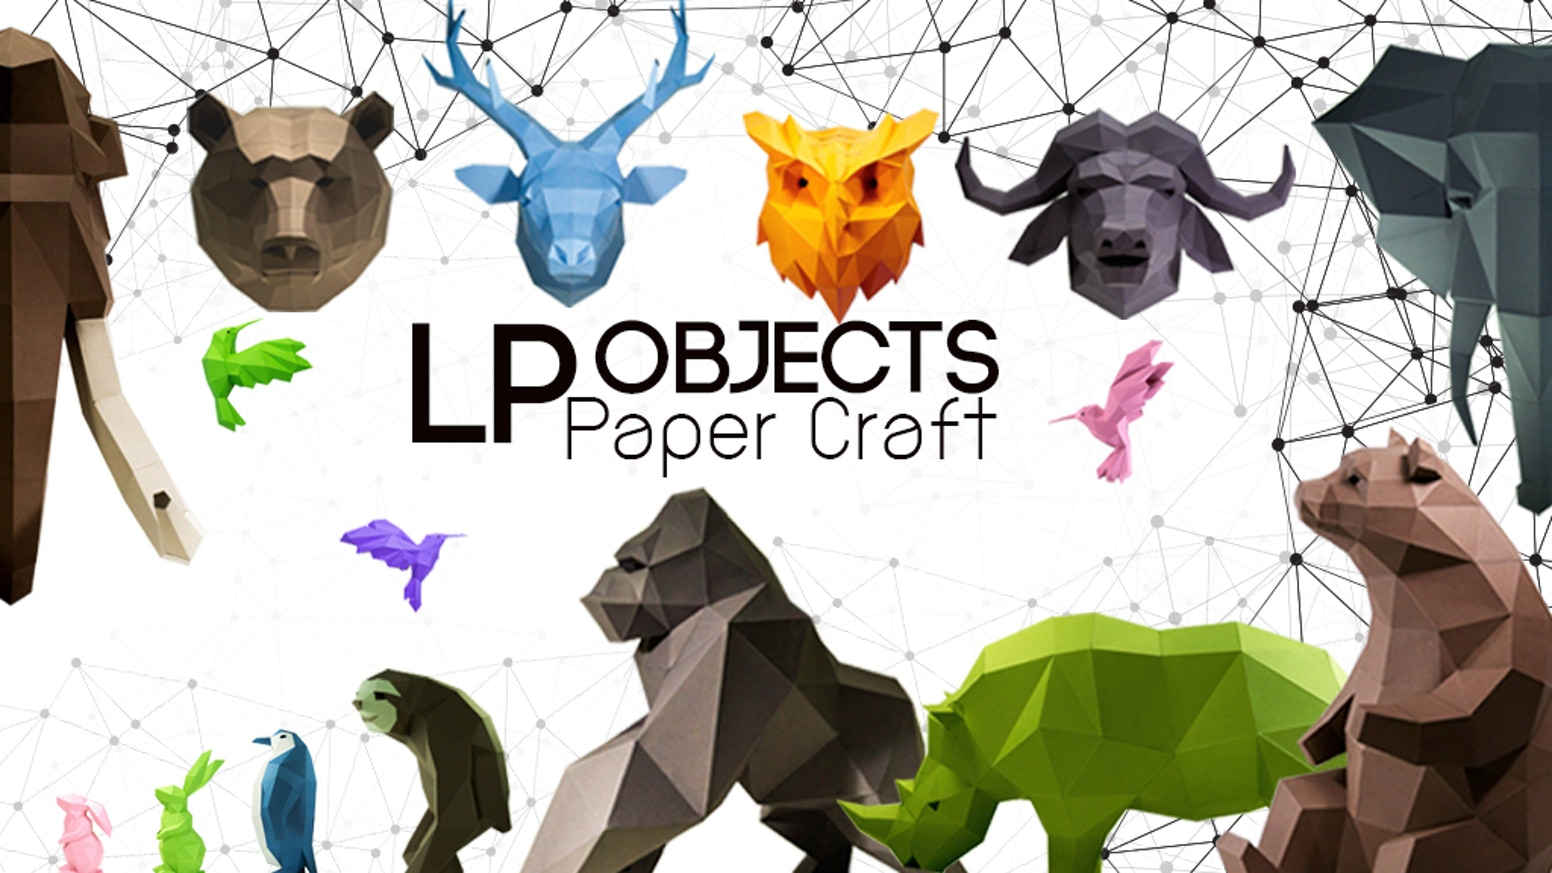 Diy papercraft art for your home by lpobjects by lpobjects kickstarter diy papercraft art for your home by lpobjects altavistaventures Image collections